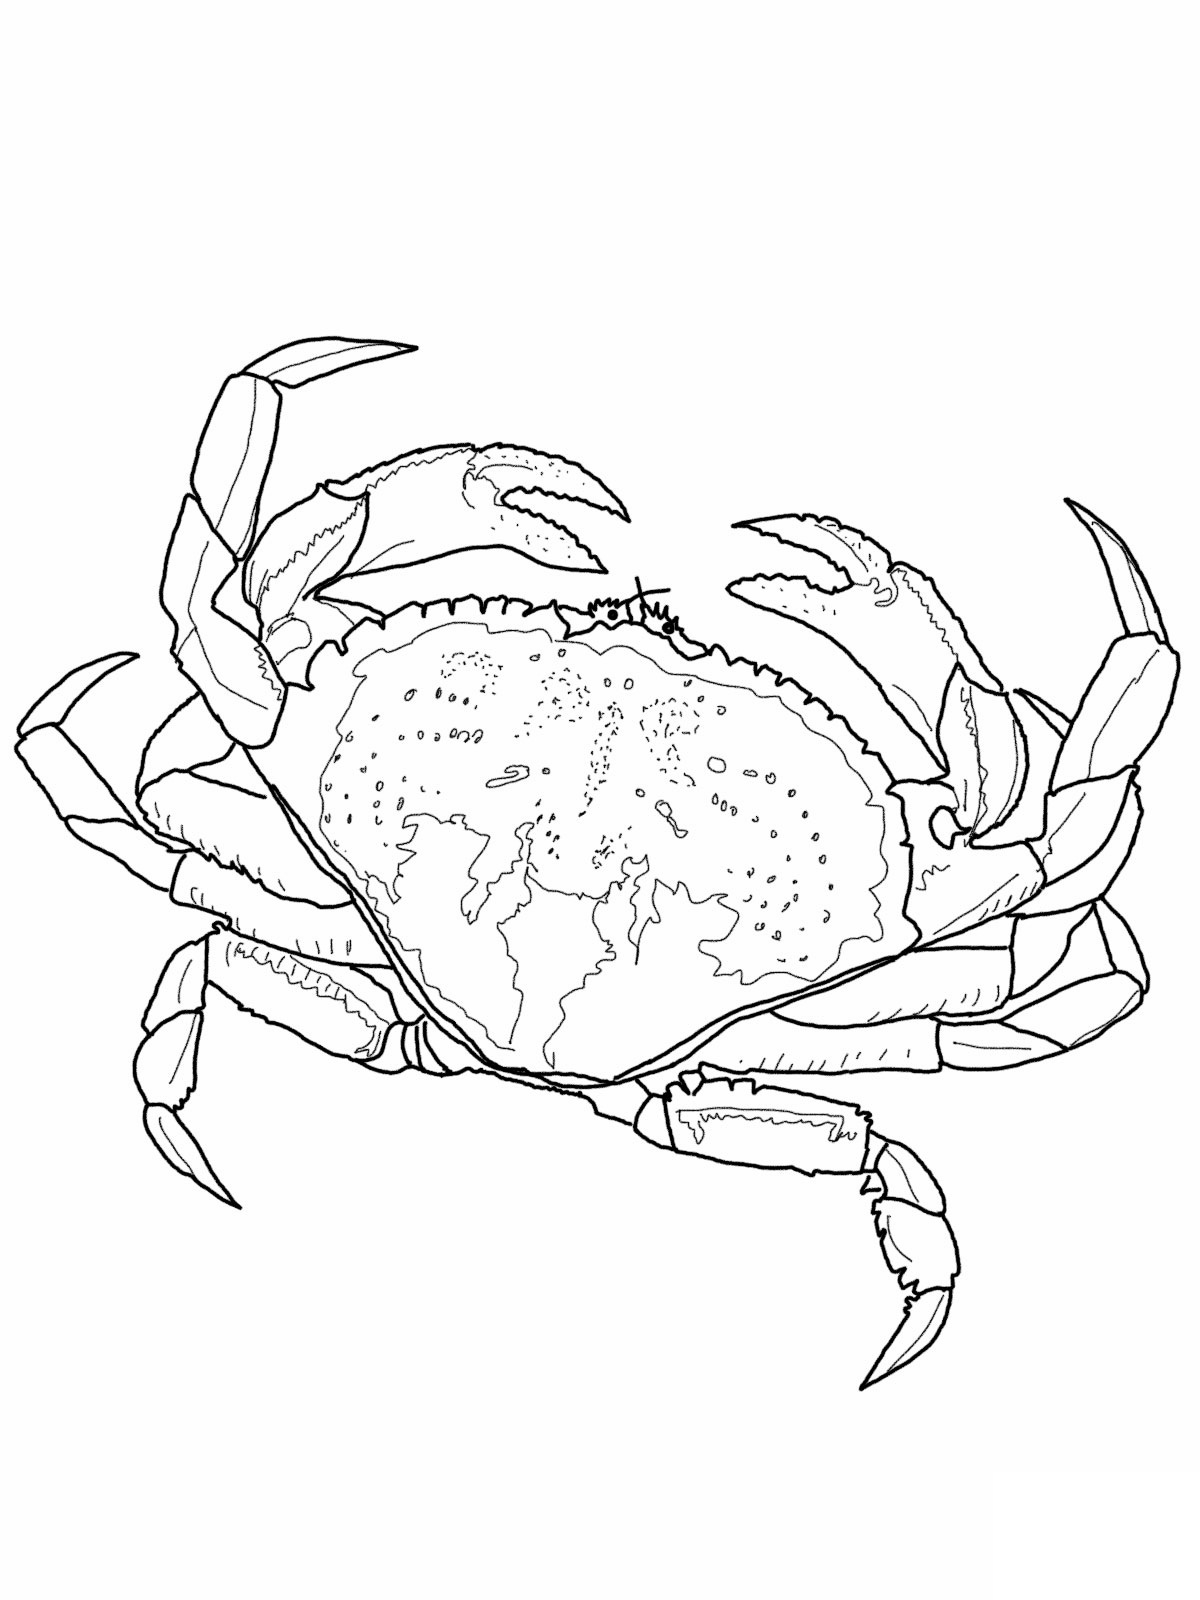 crabs coloring pages crabs coloring pages coloring crabs pages